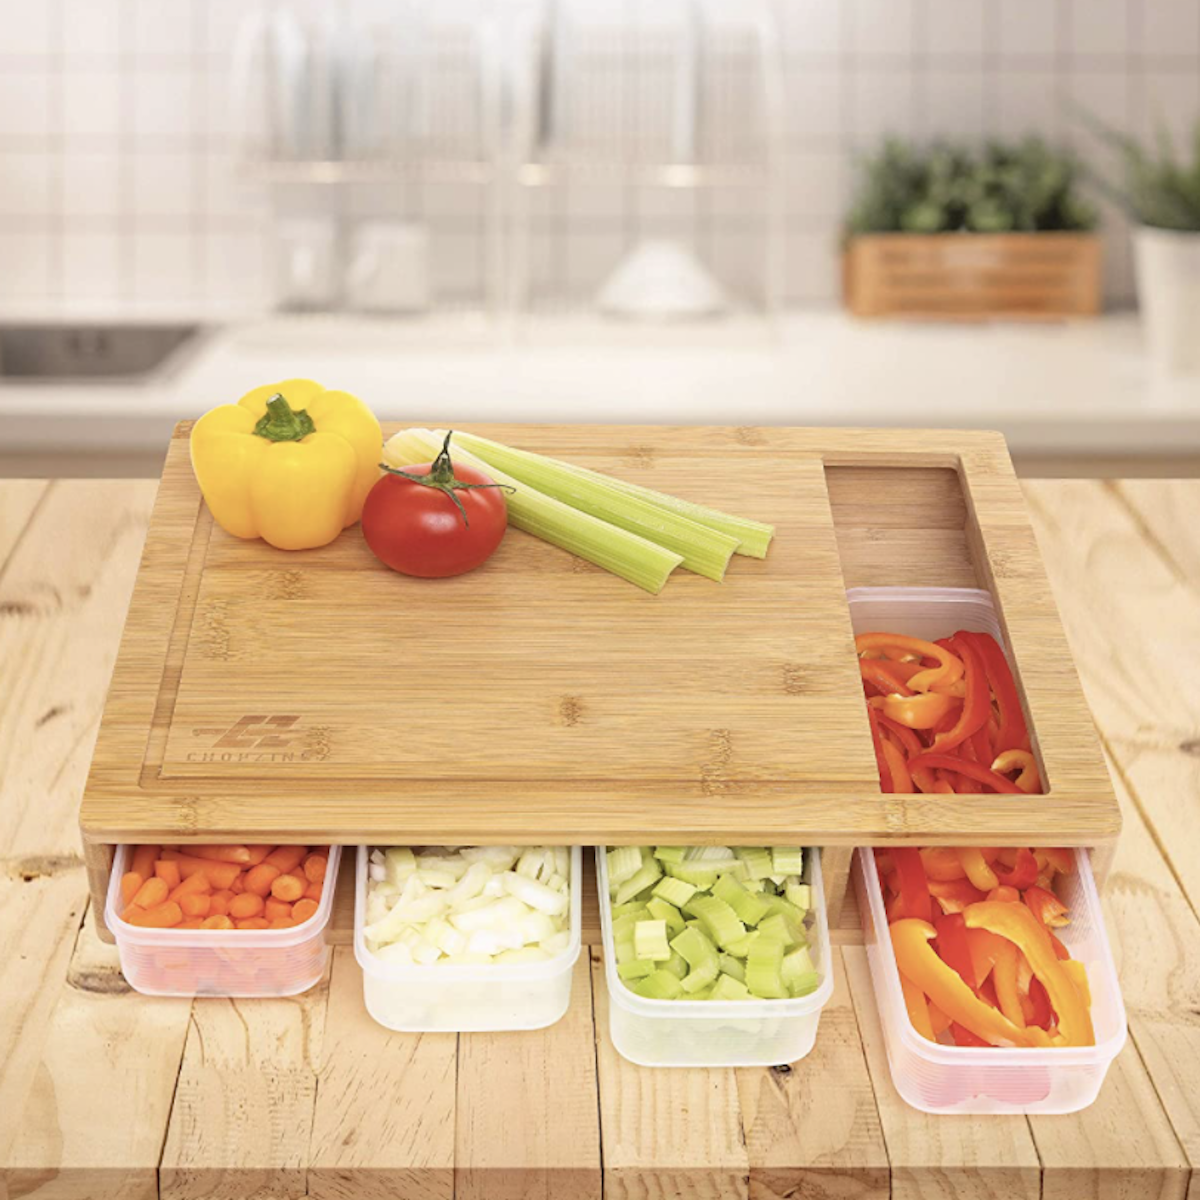 Bamboo cutting board with containers and lids